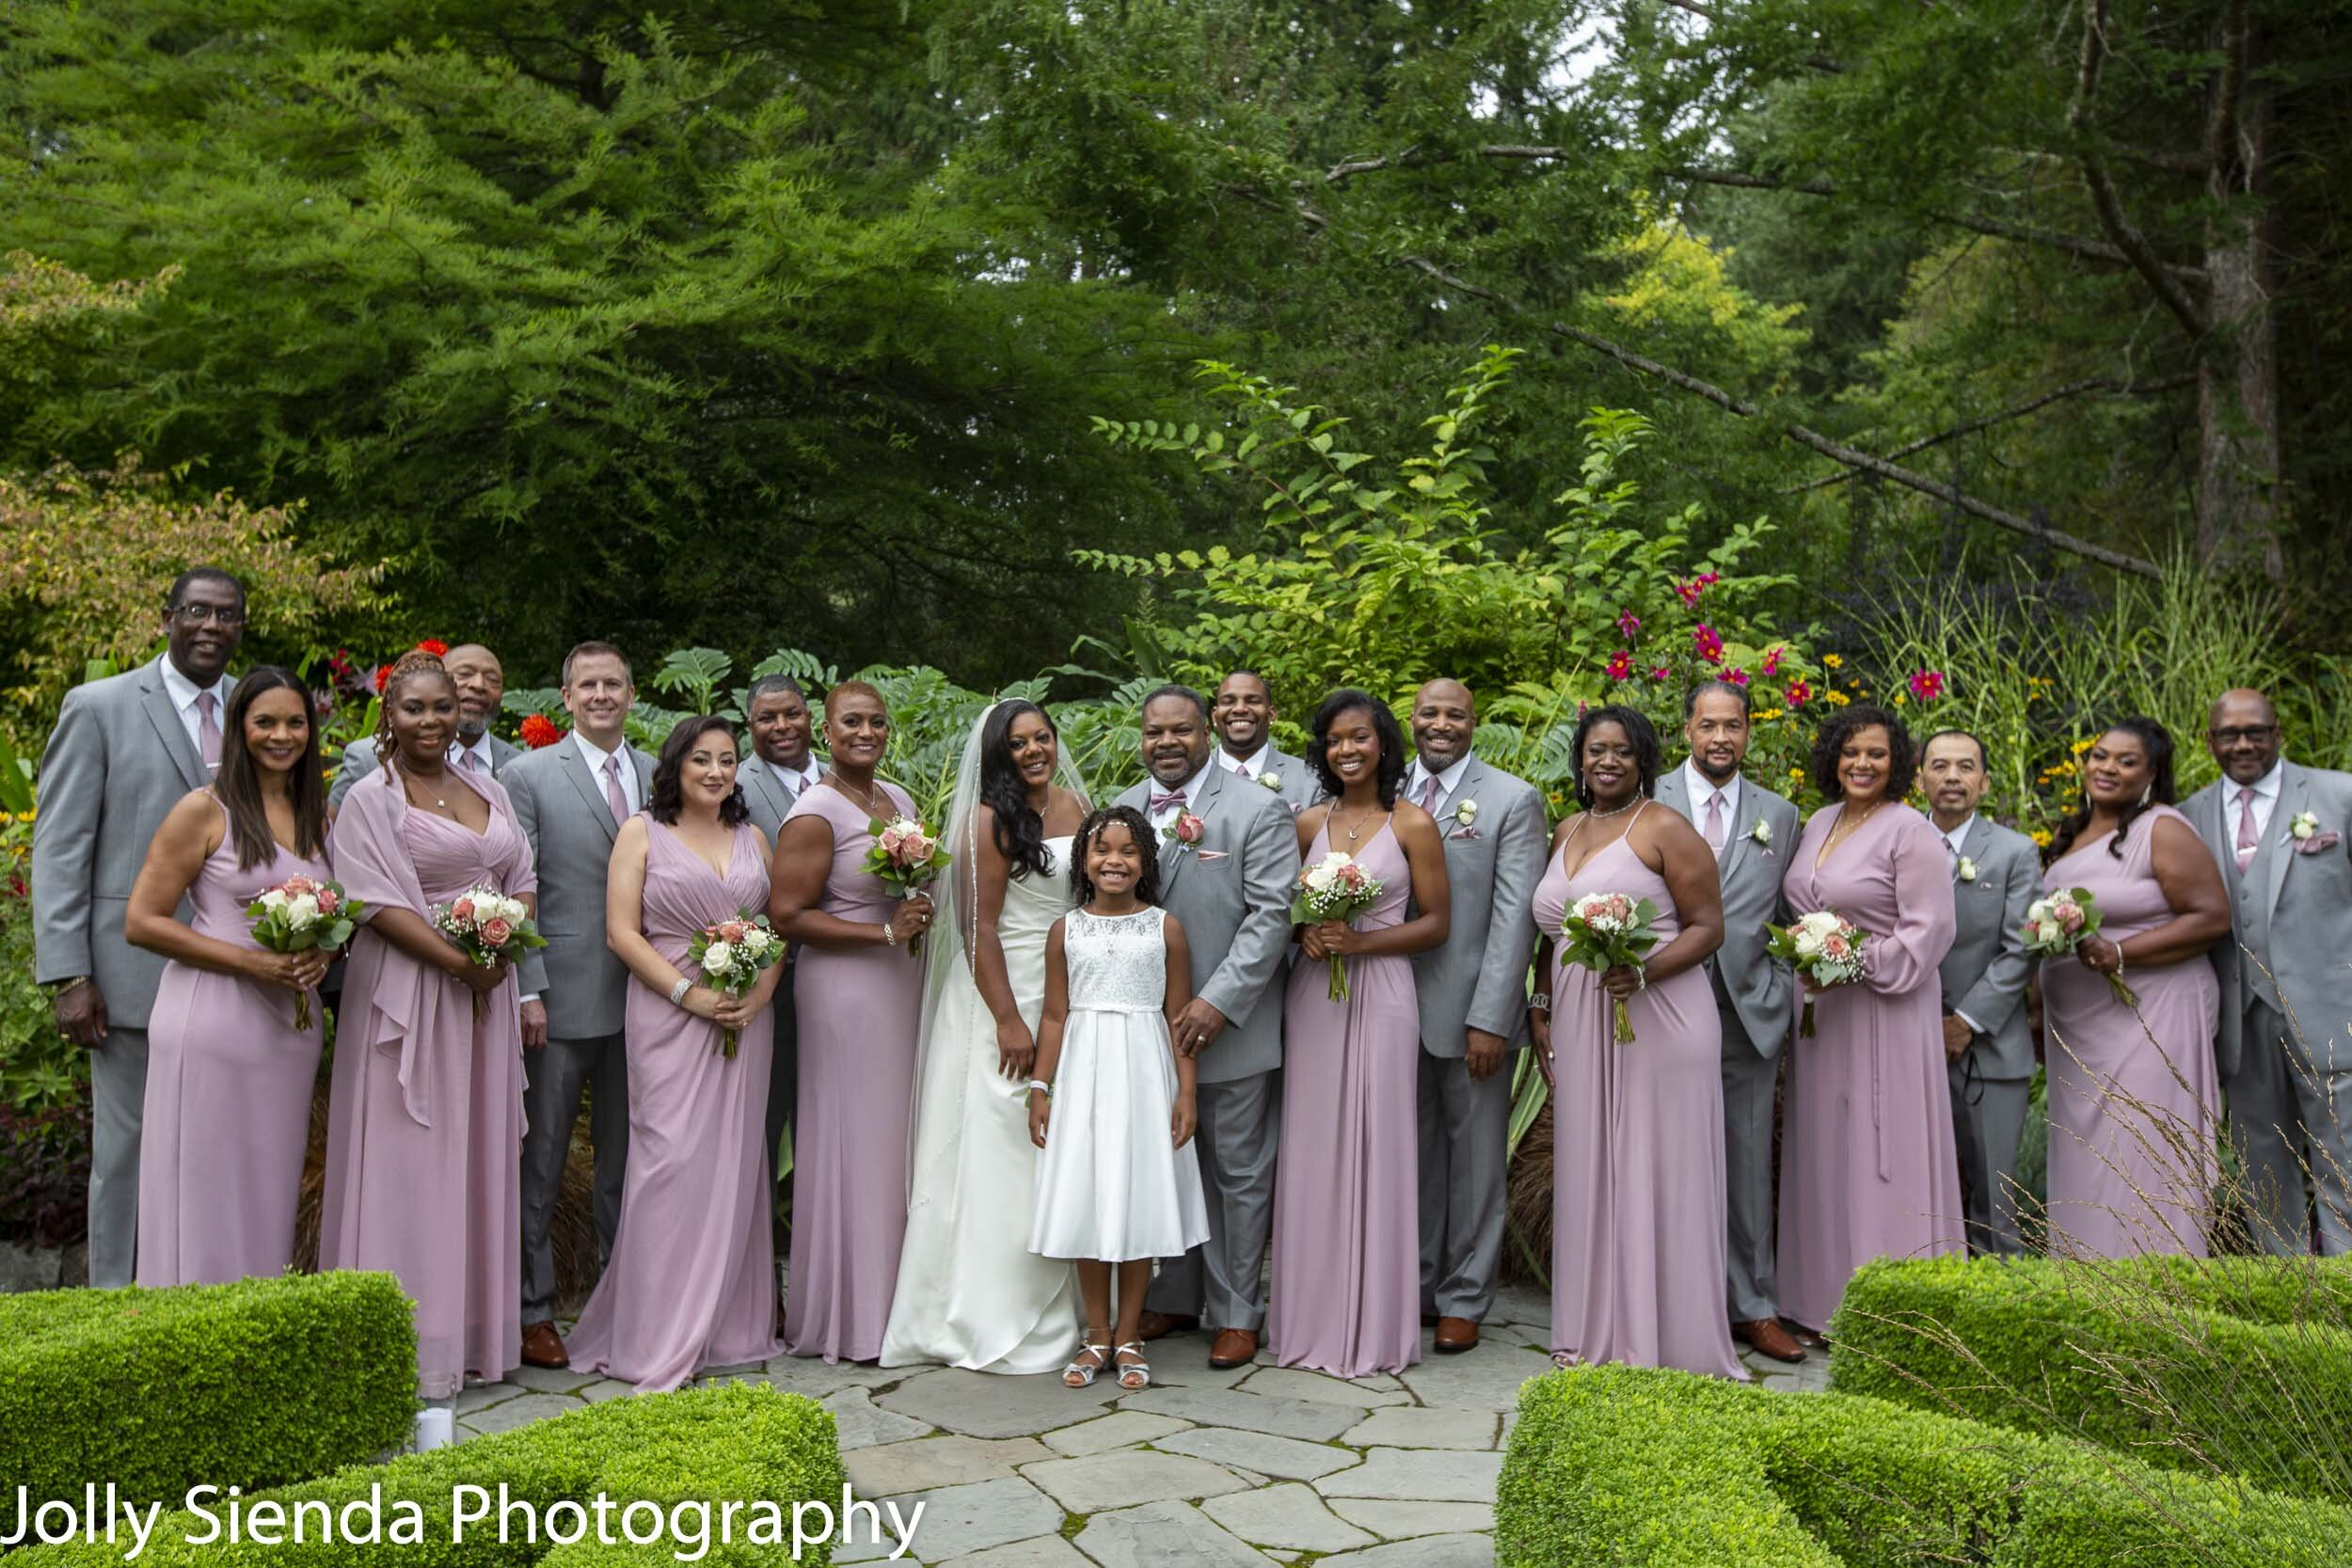 Nioka and Jefferson Butler with their wedding party at Heronswood Garden, by Jolly Sienda Photography